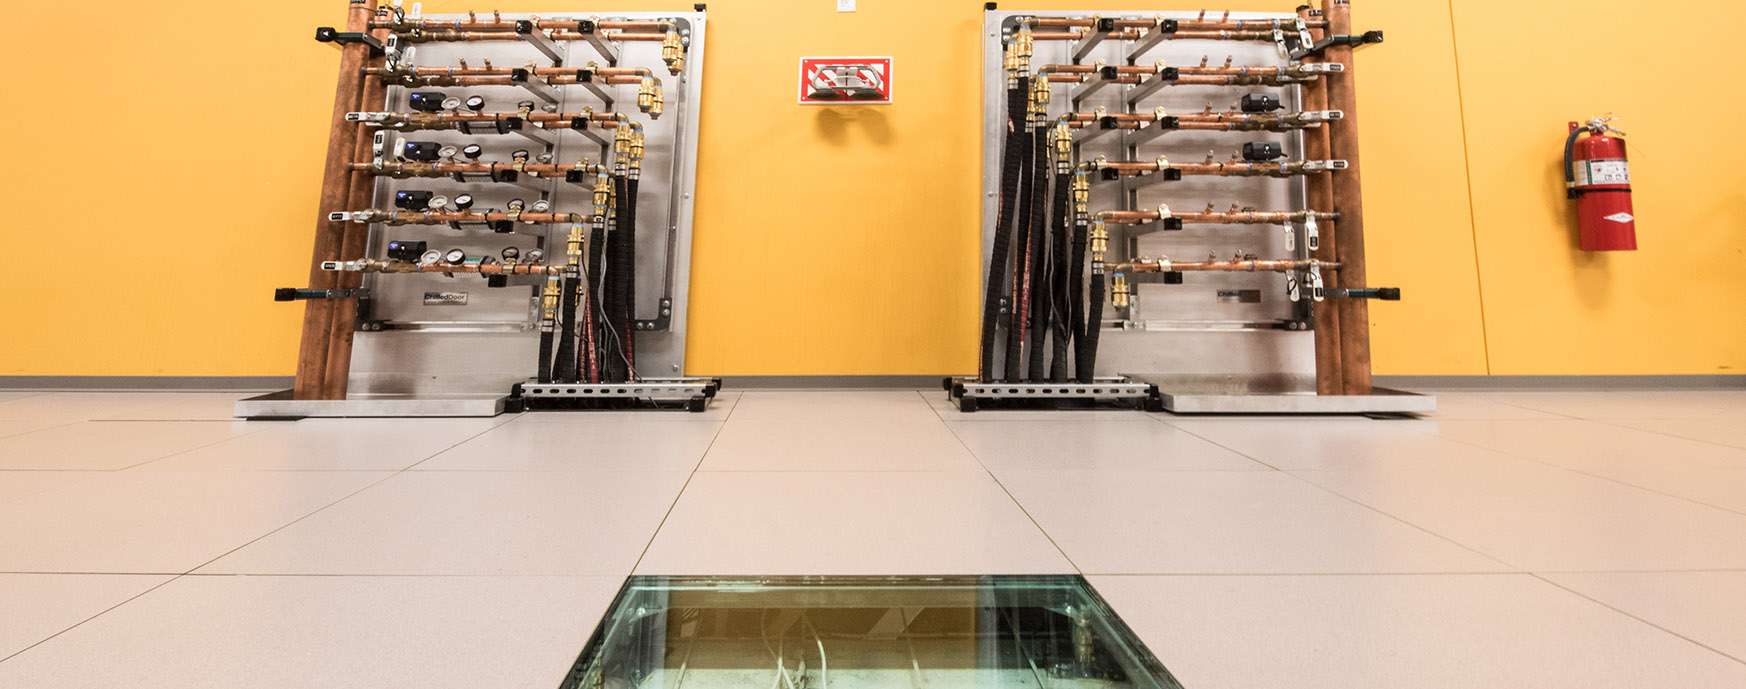 Photo of hot aisle containment manifolds in data center providing energy recovery water